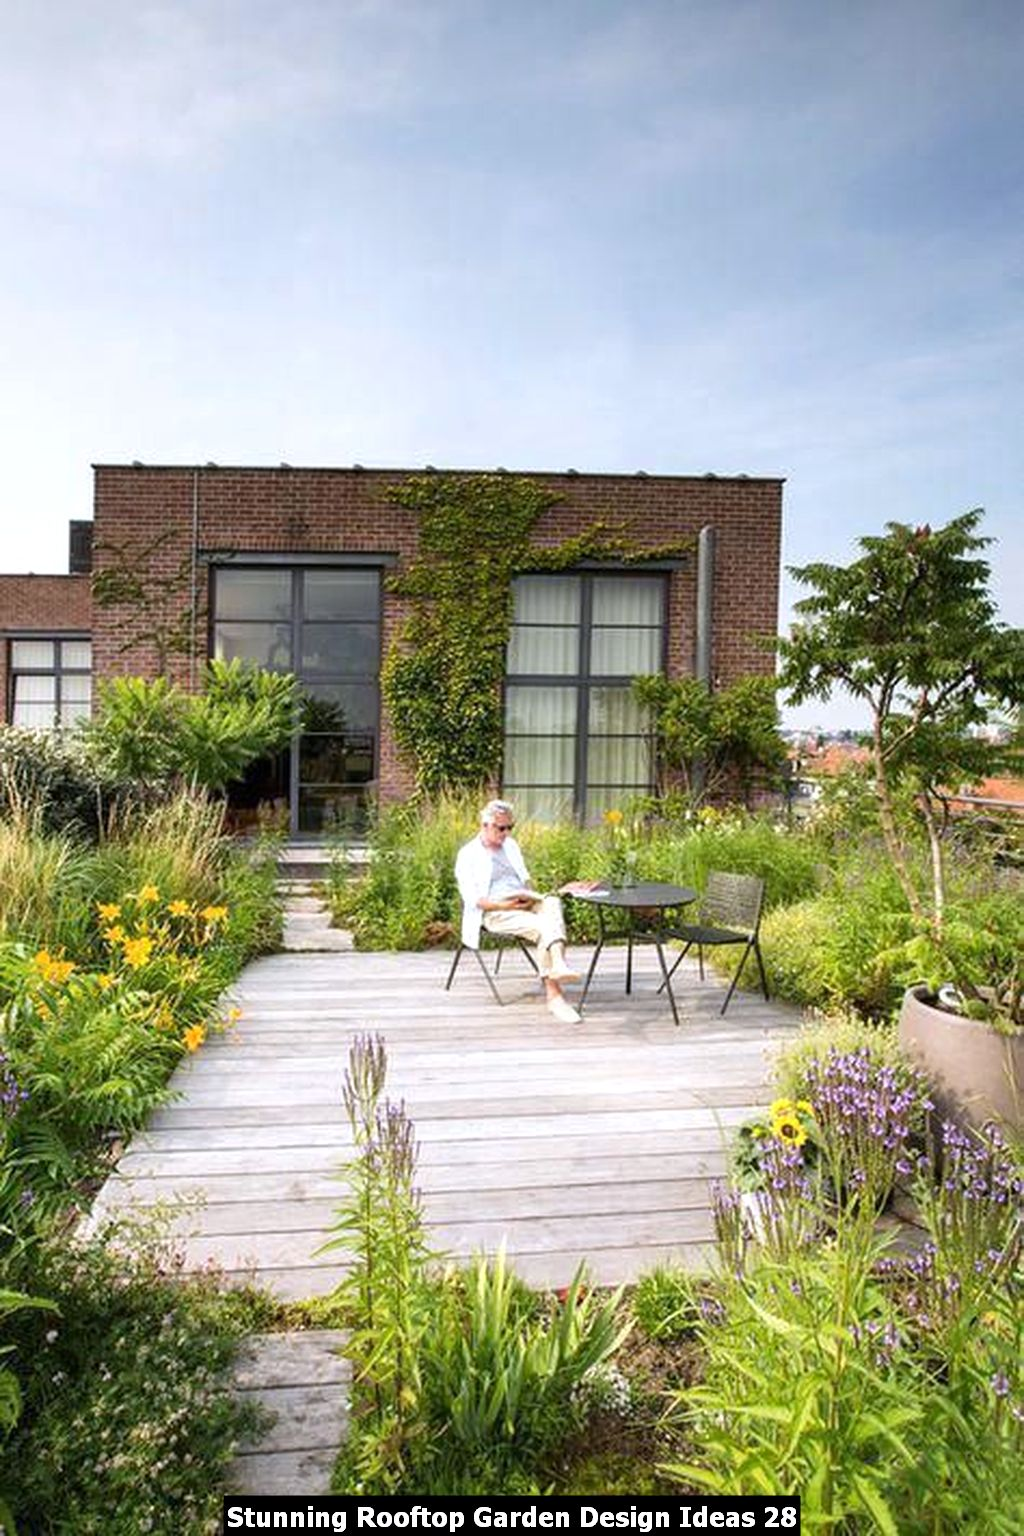 Stunning Rooftop Garden Design Ideas 28